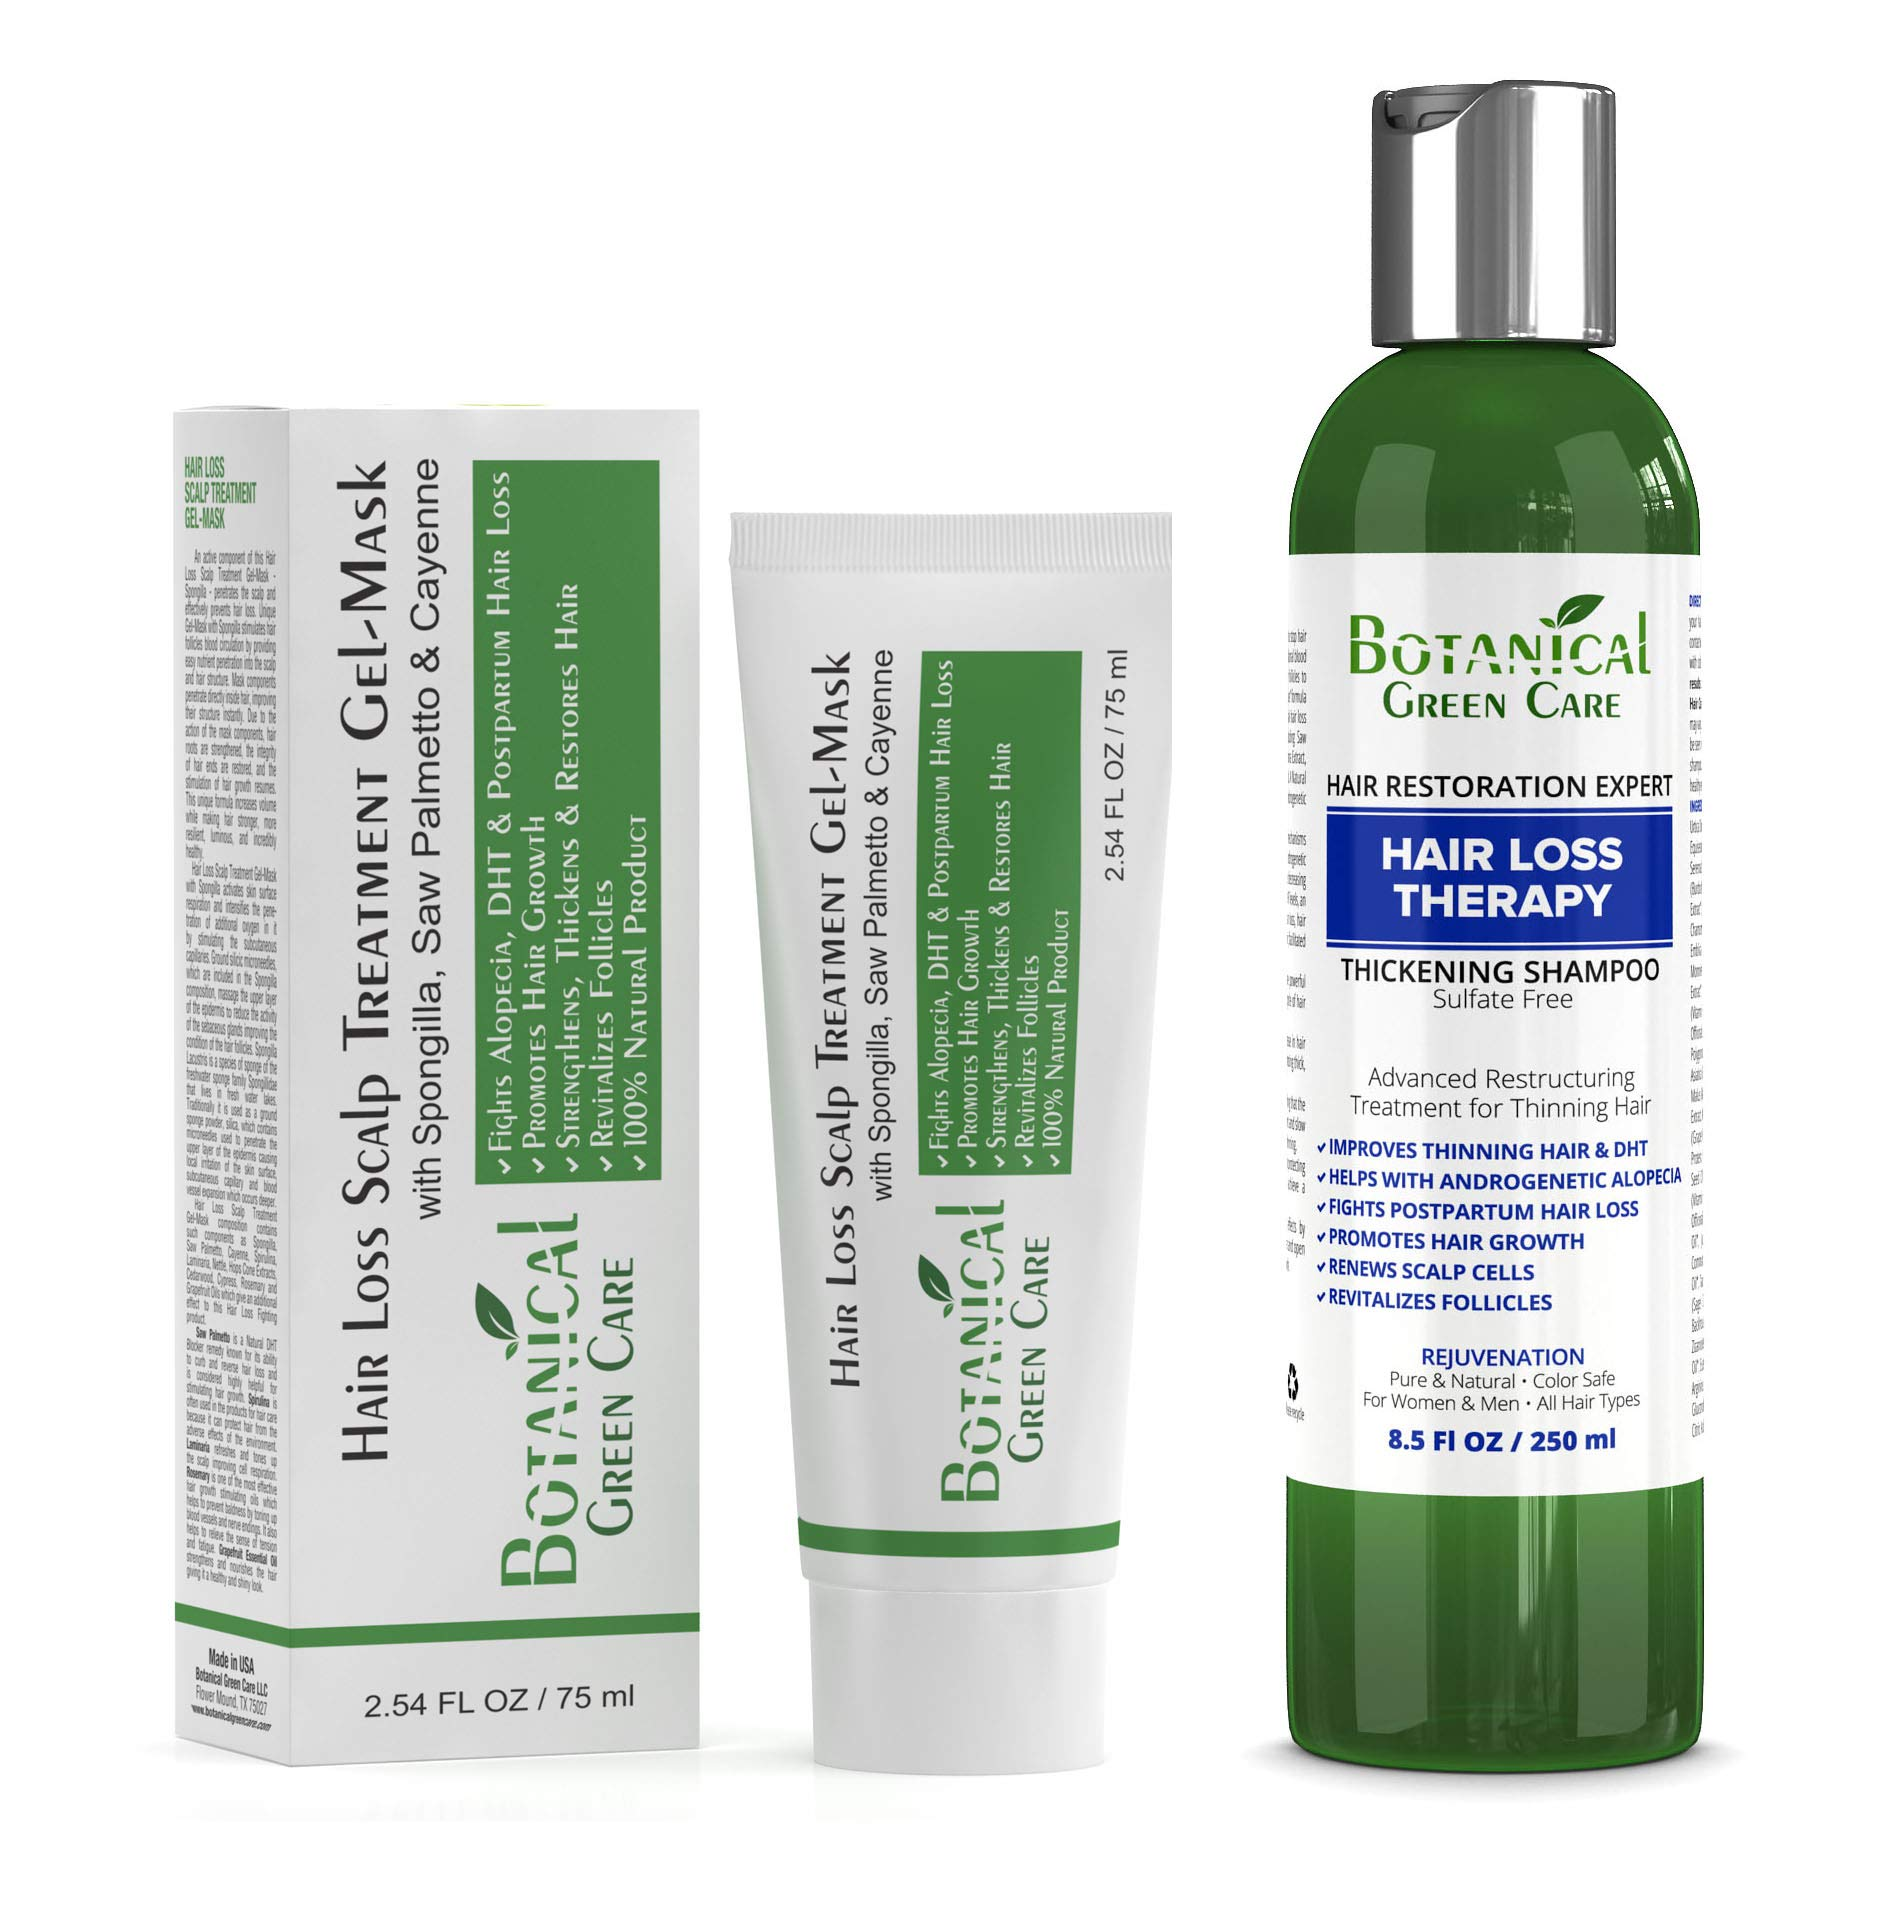 Hair Loss Therapy Shampoo & Scalp Treatment Mask Value Set (2 items) - Saw Palmetto Hair Growth For Hair Thinning Prevention Alopecia DHT Blocking. Doctor Developed by Botanical Green Care